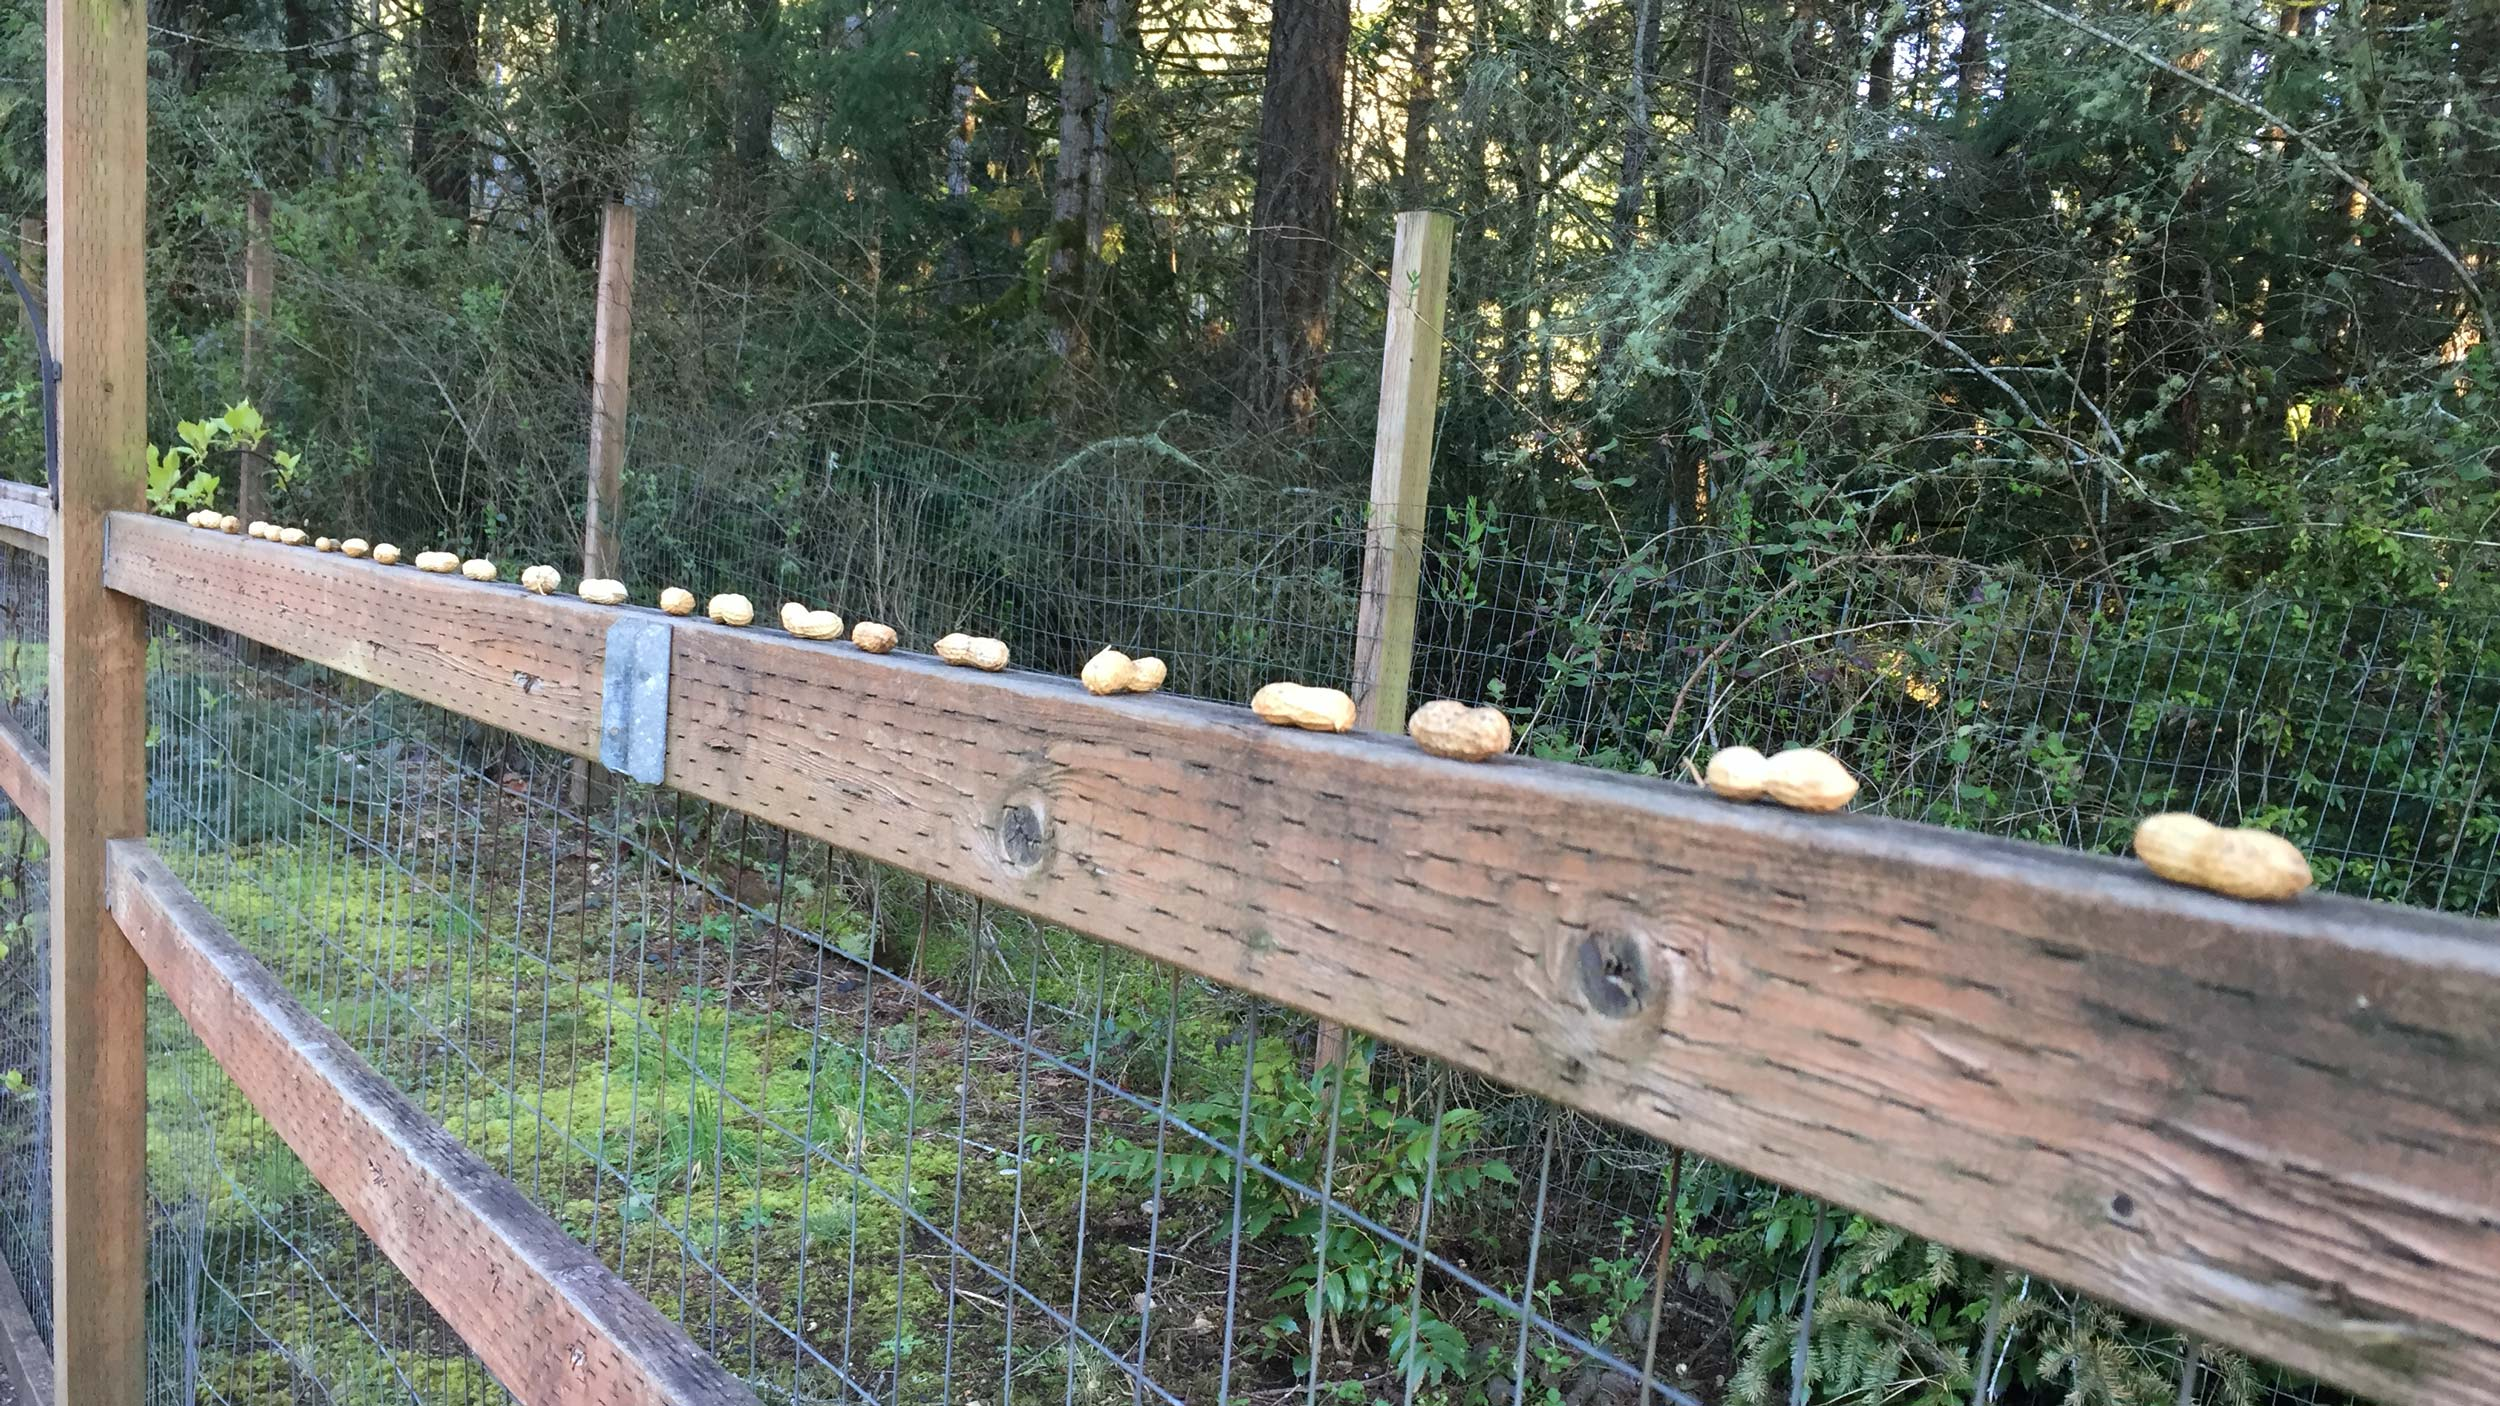 Peanuts on the fence